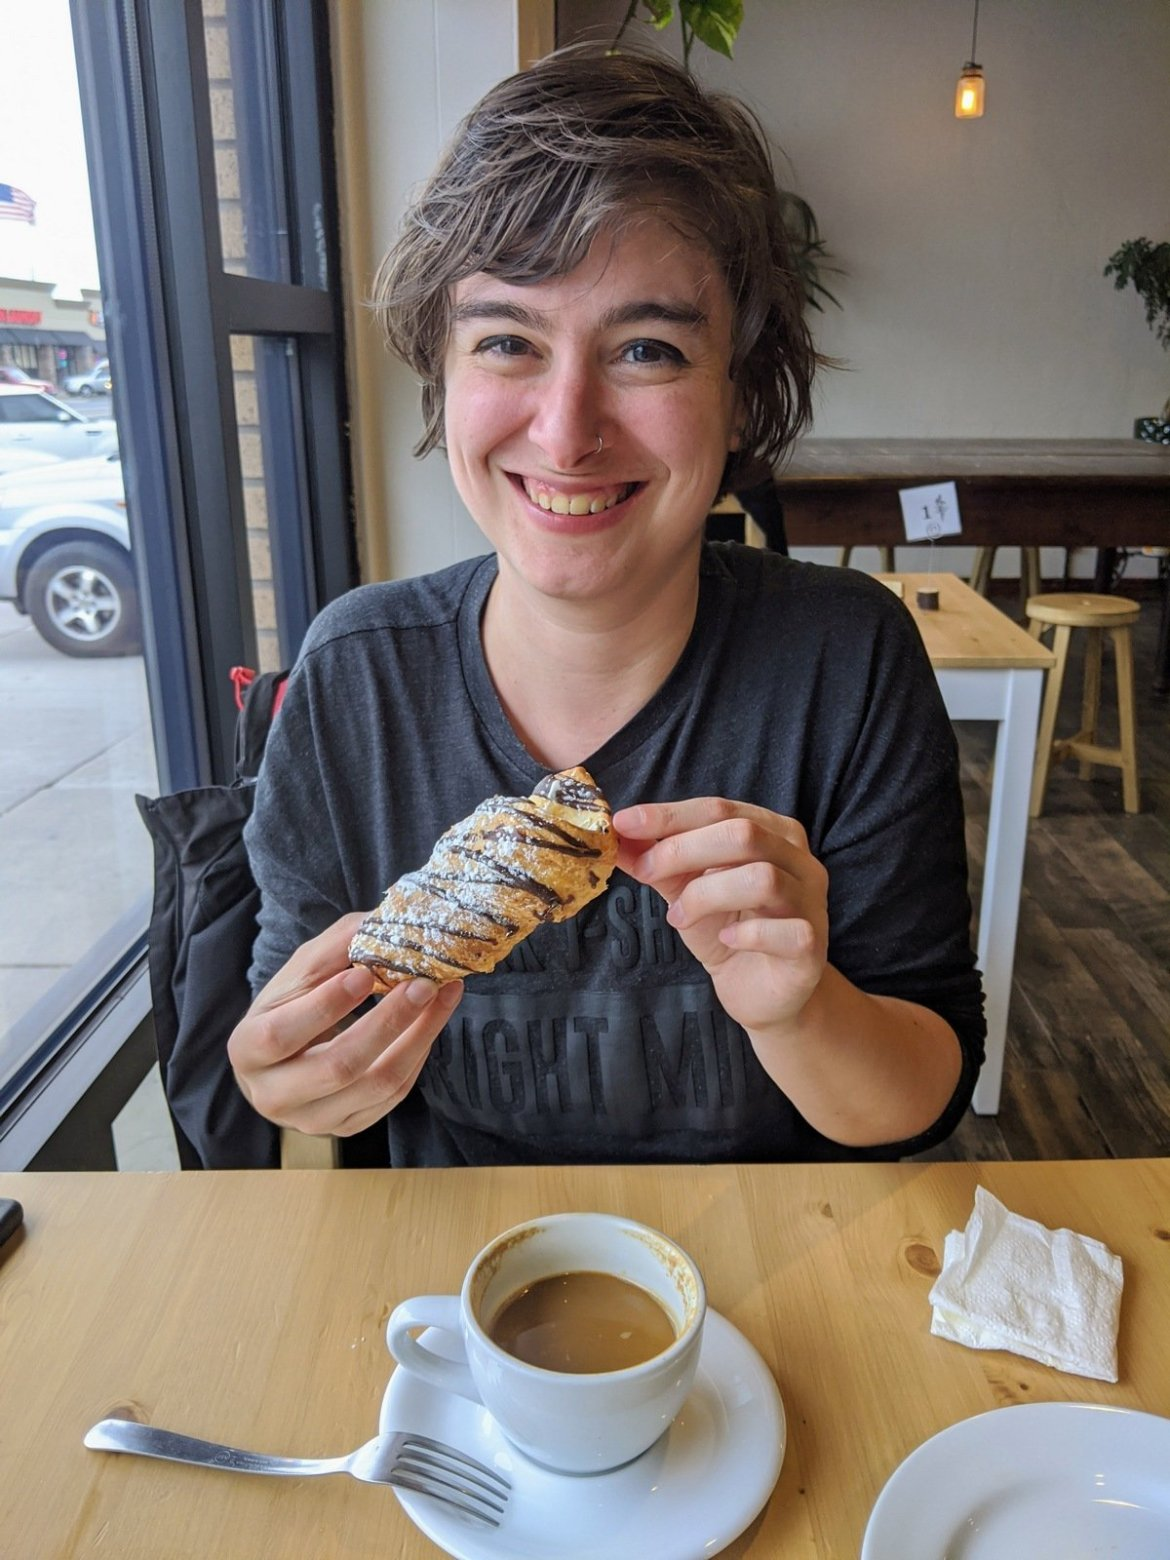 woman holding vegan pastry and coffee cup in front